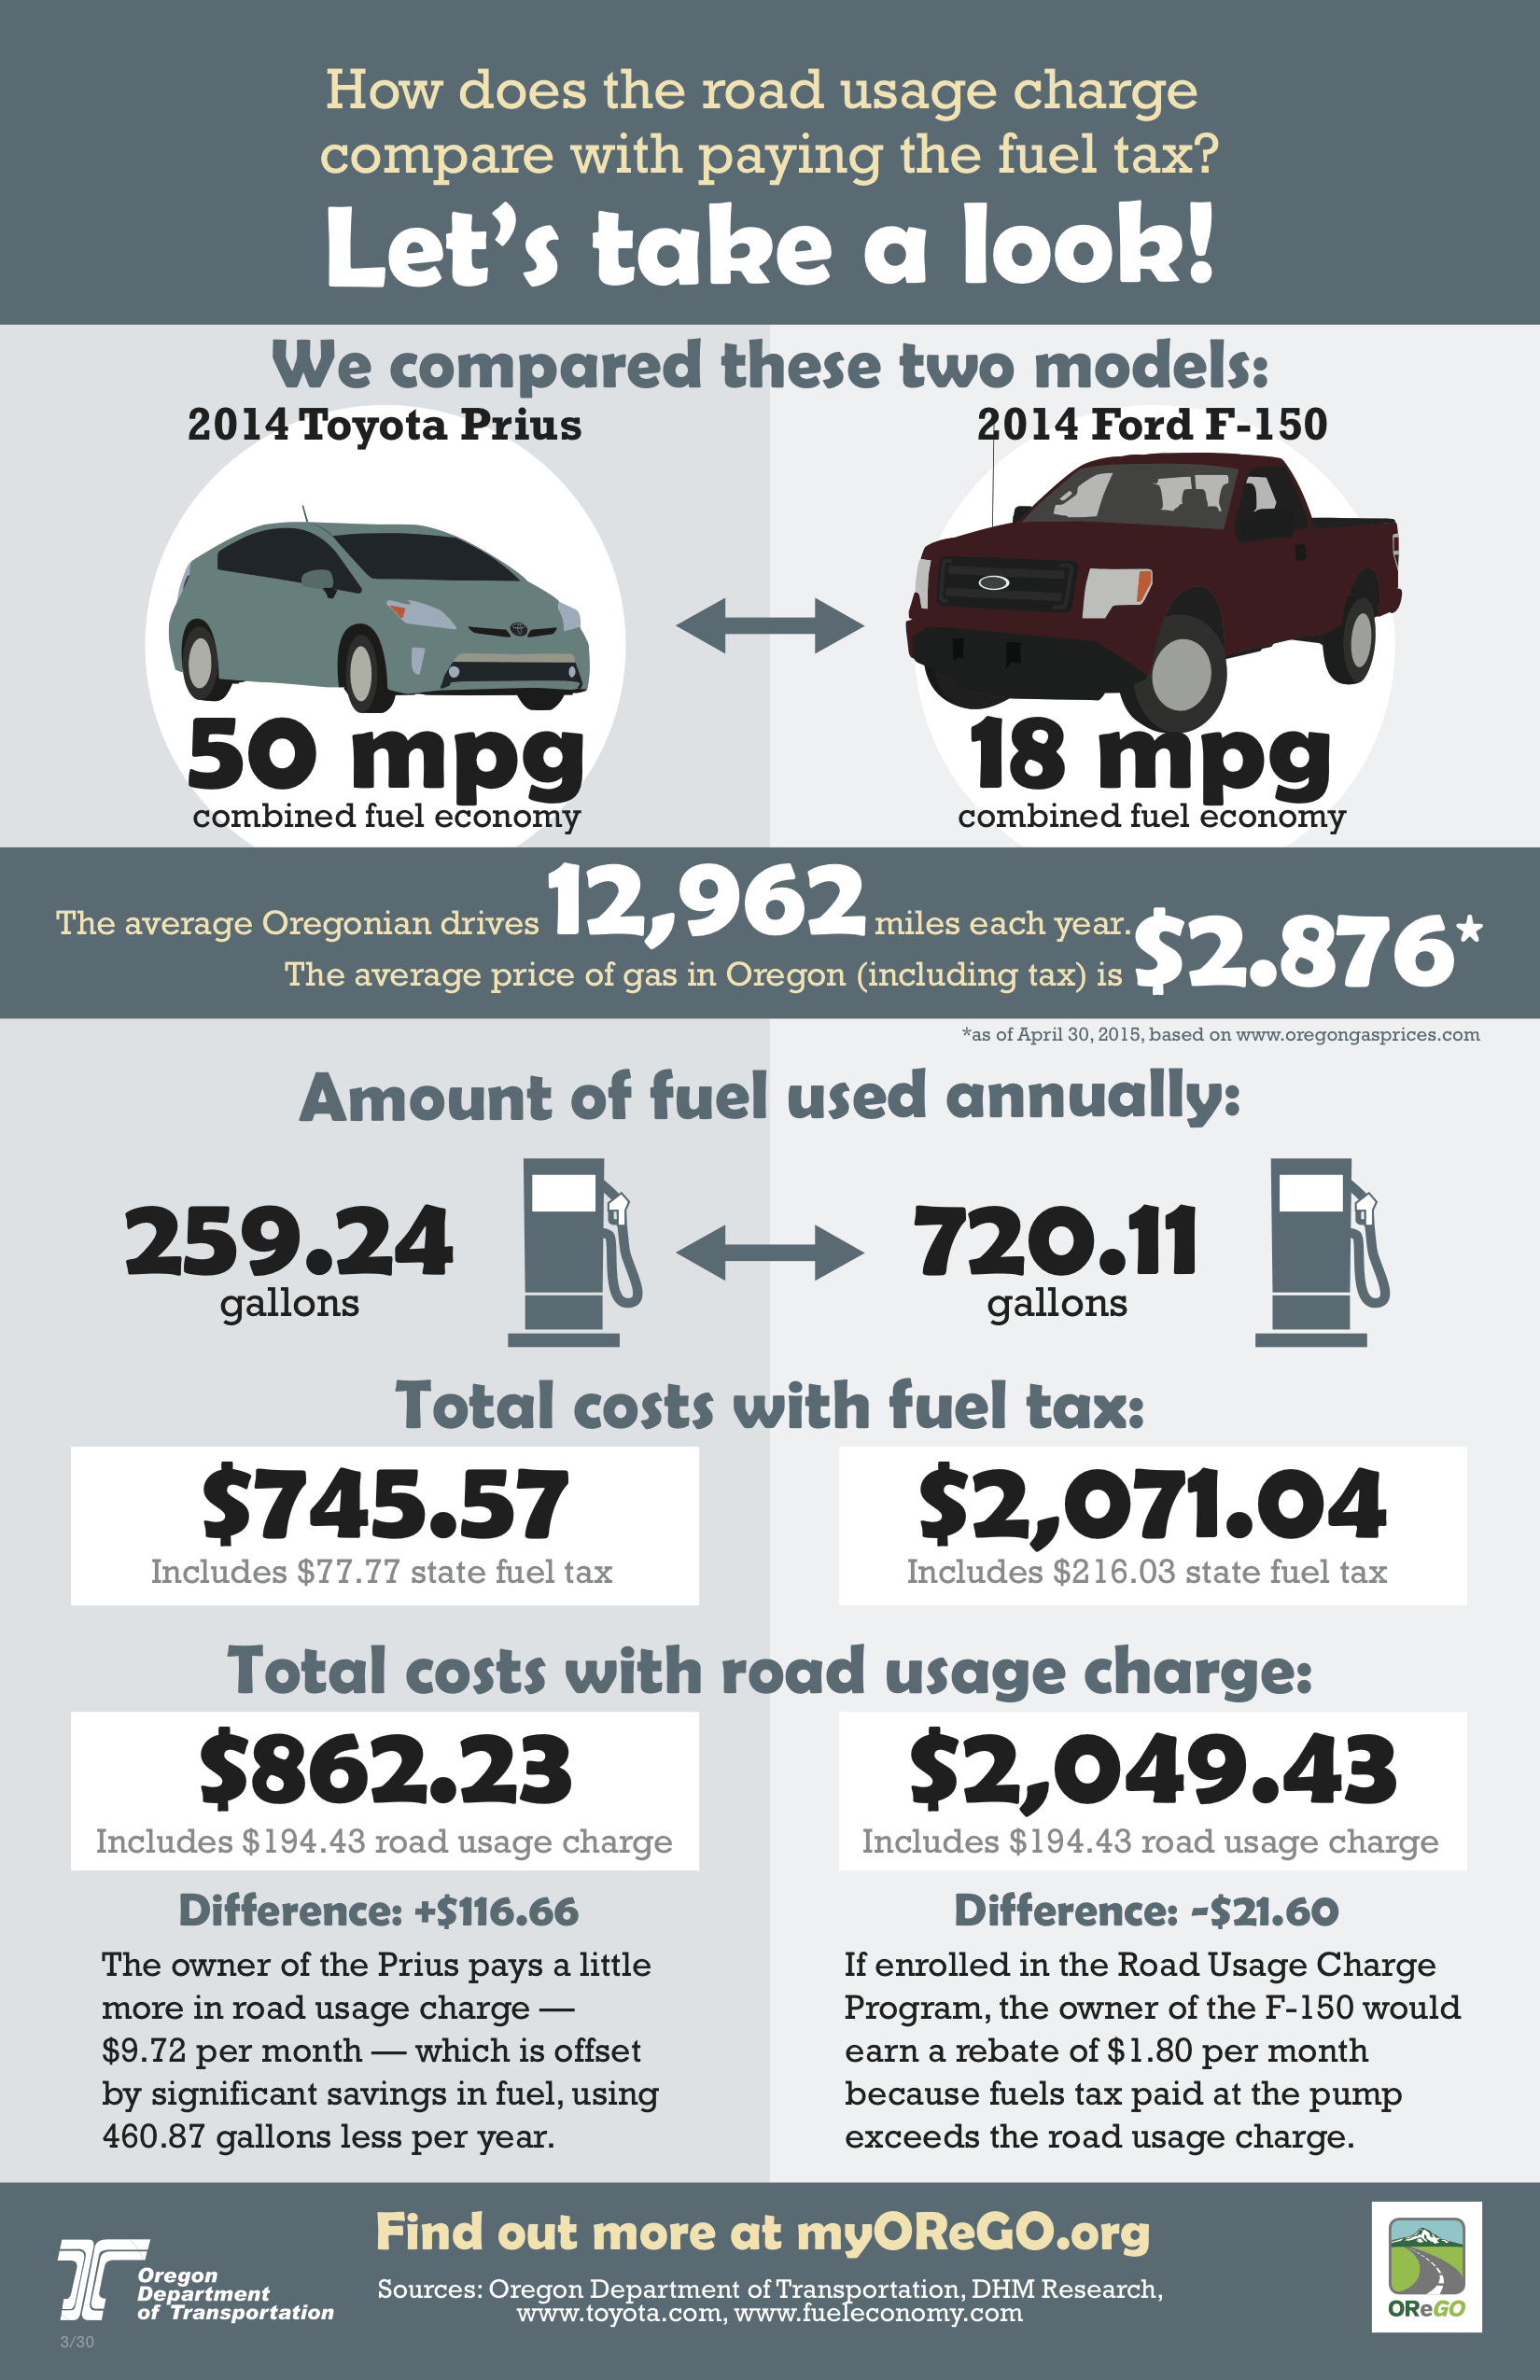 How does the road usage charge compare with paying the fuel tax?